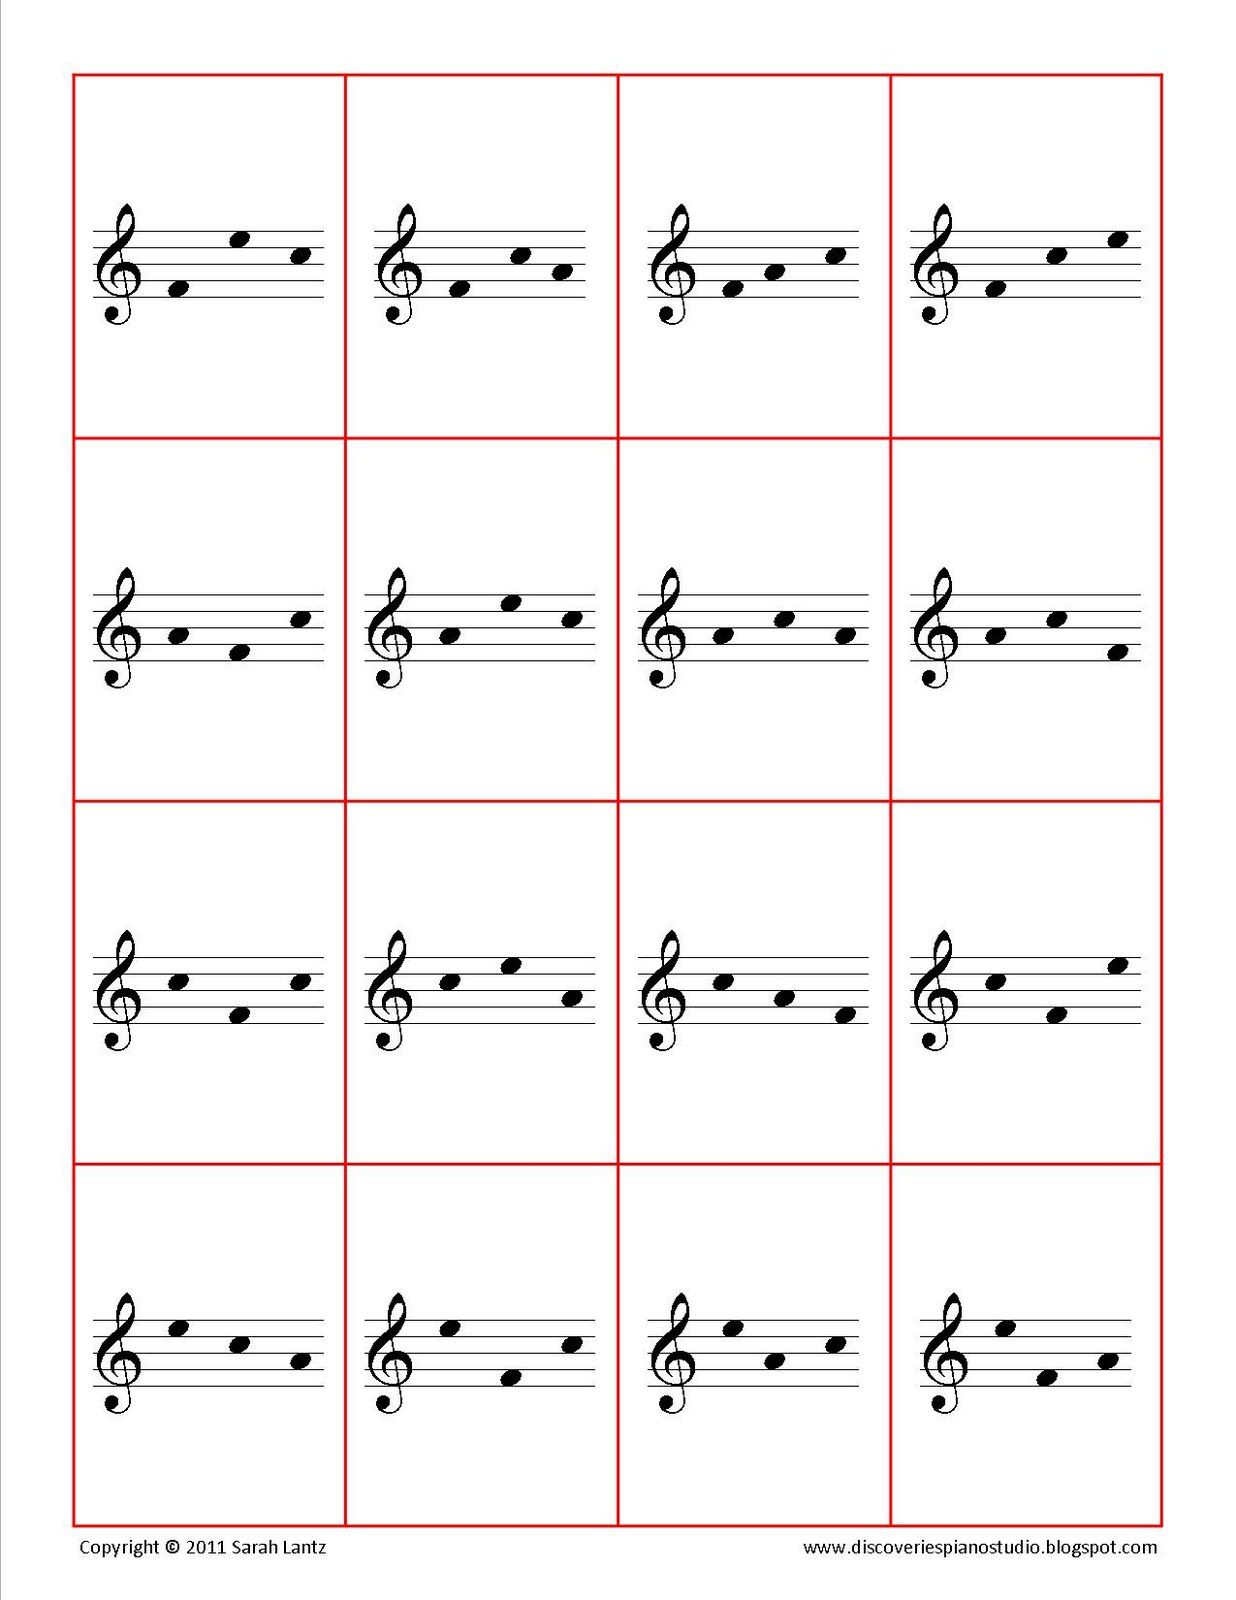 Face Flashcards For Treble And Bass Clef